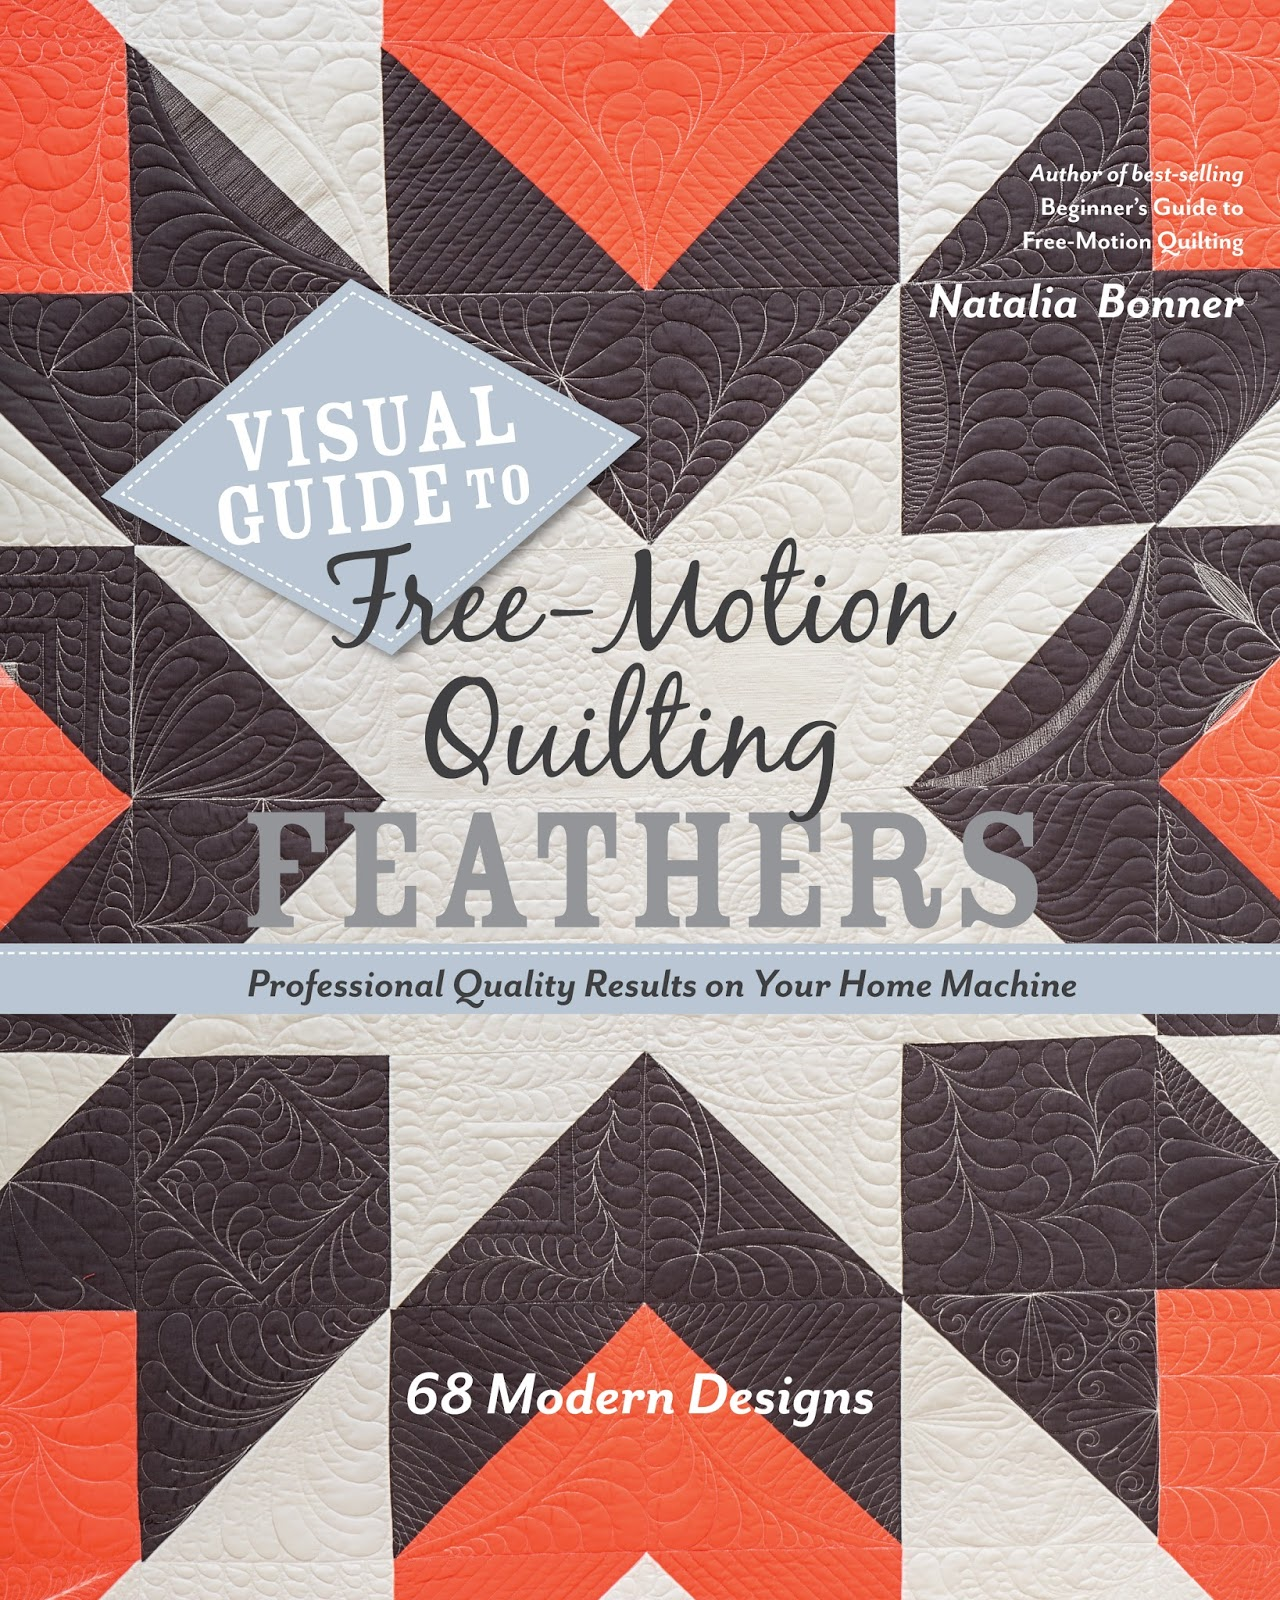 Free-Motion Quilting Feathers - C&T Publishing